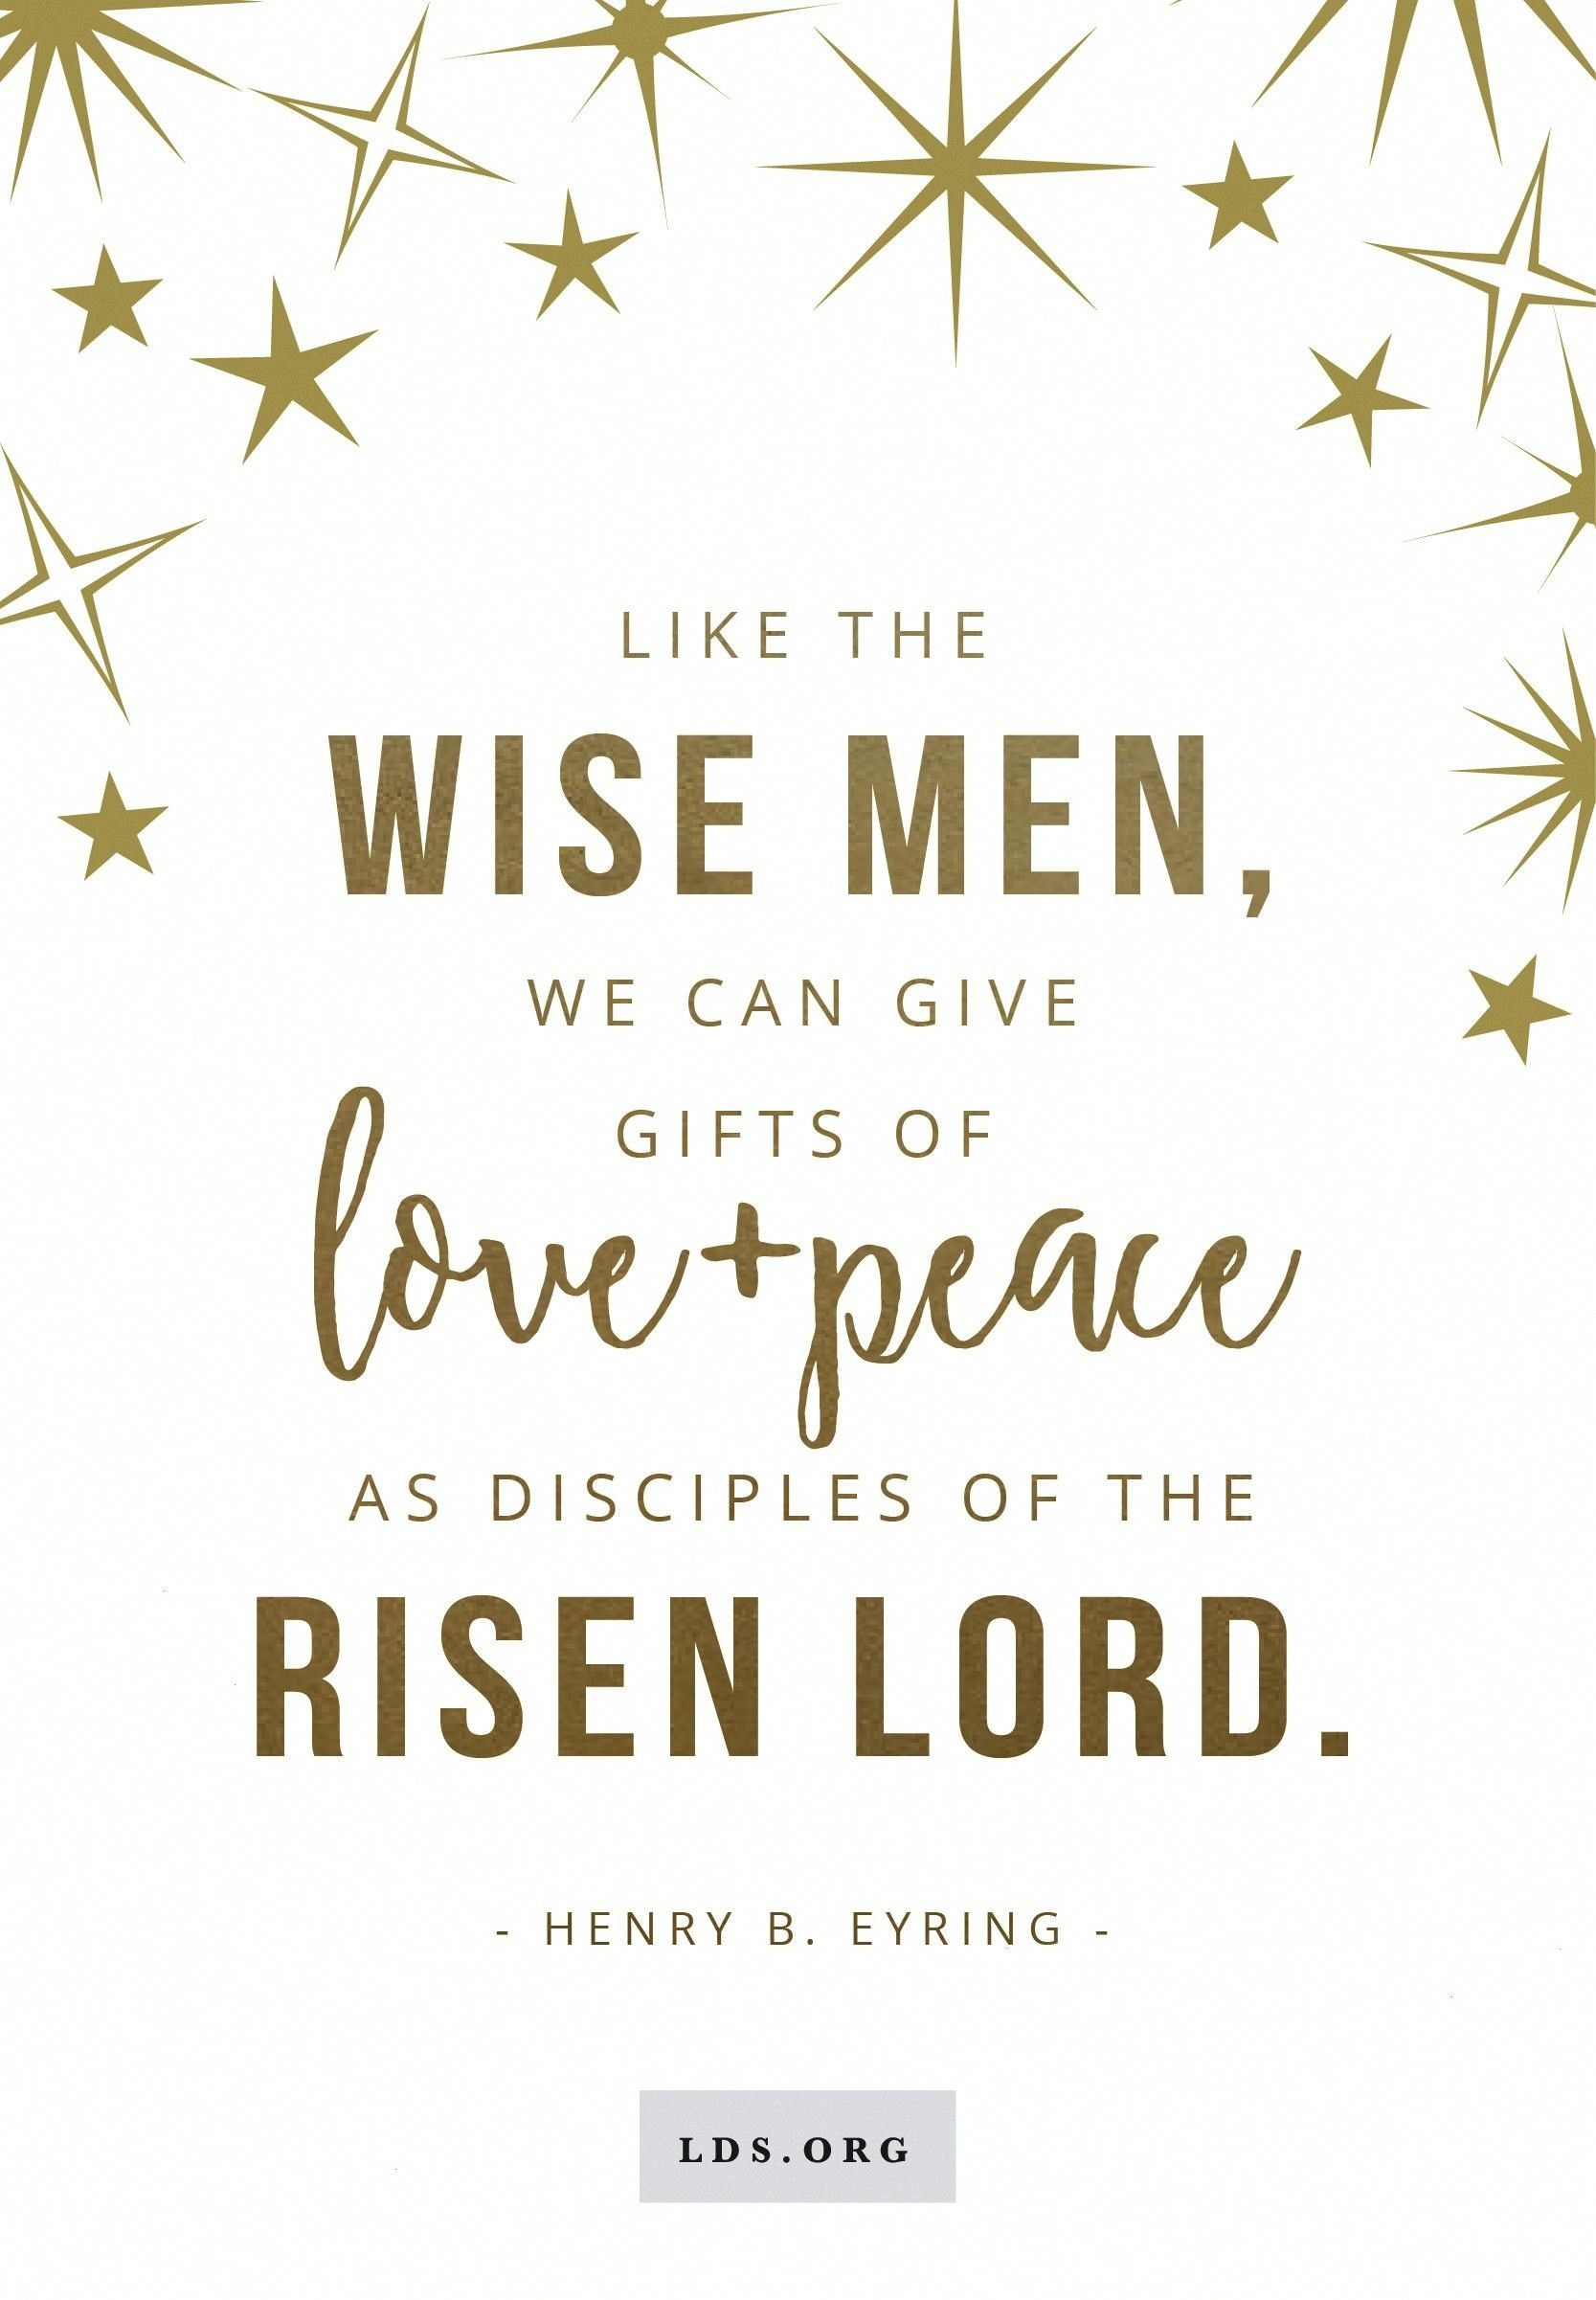 Wise Men we can give gifts of love and peace as disciples of the risen Lord Henry B EyringLike the Wise Men we can give gifts of love and peace as disciples of the risen...